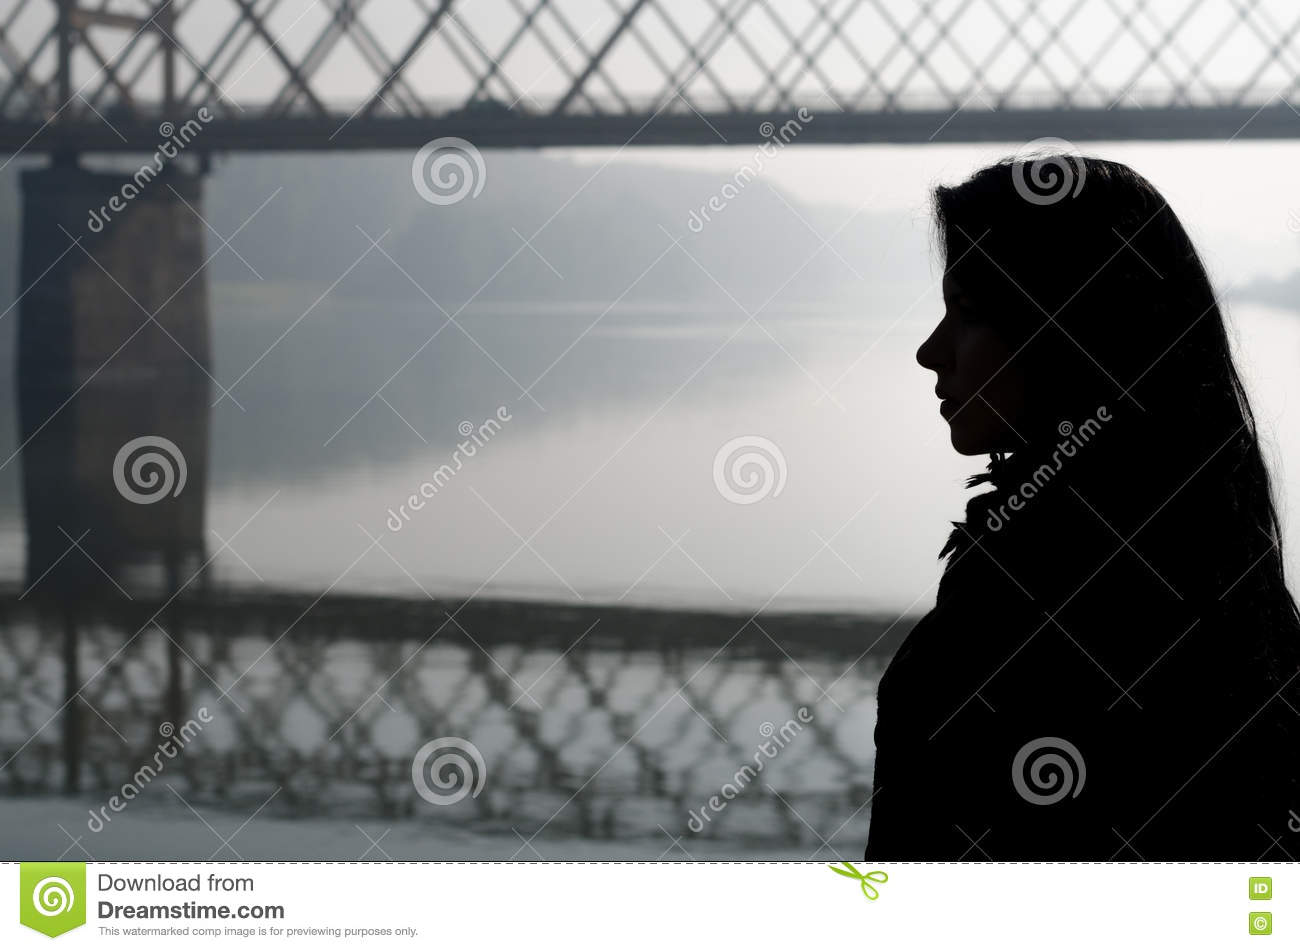 Silhouette of girl and bridge over river on beautiful autumn day